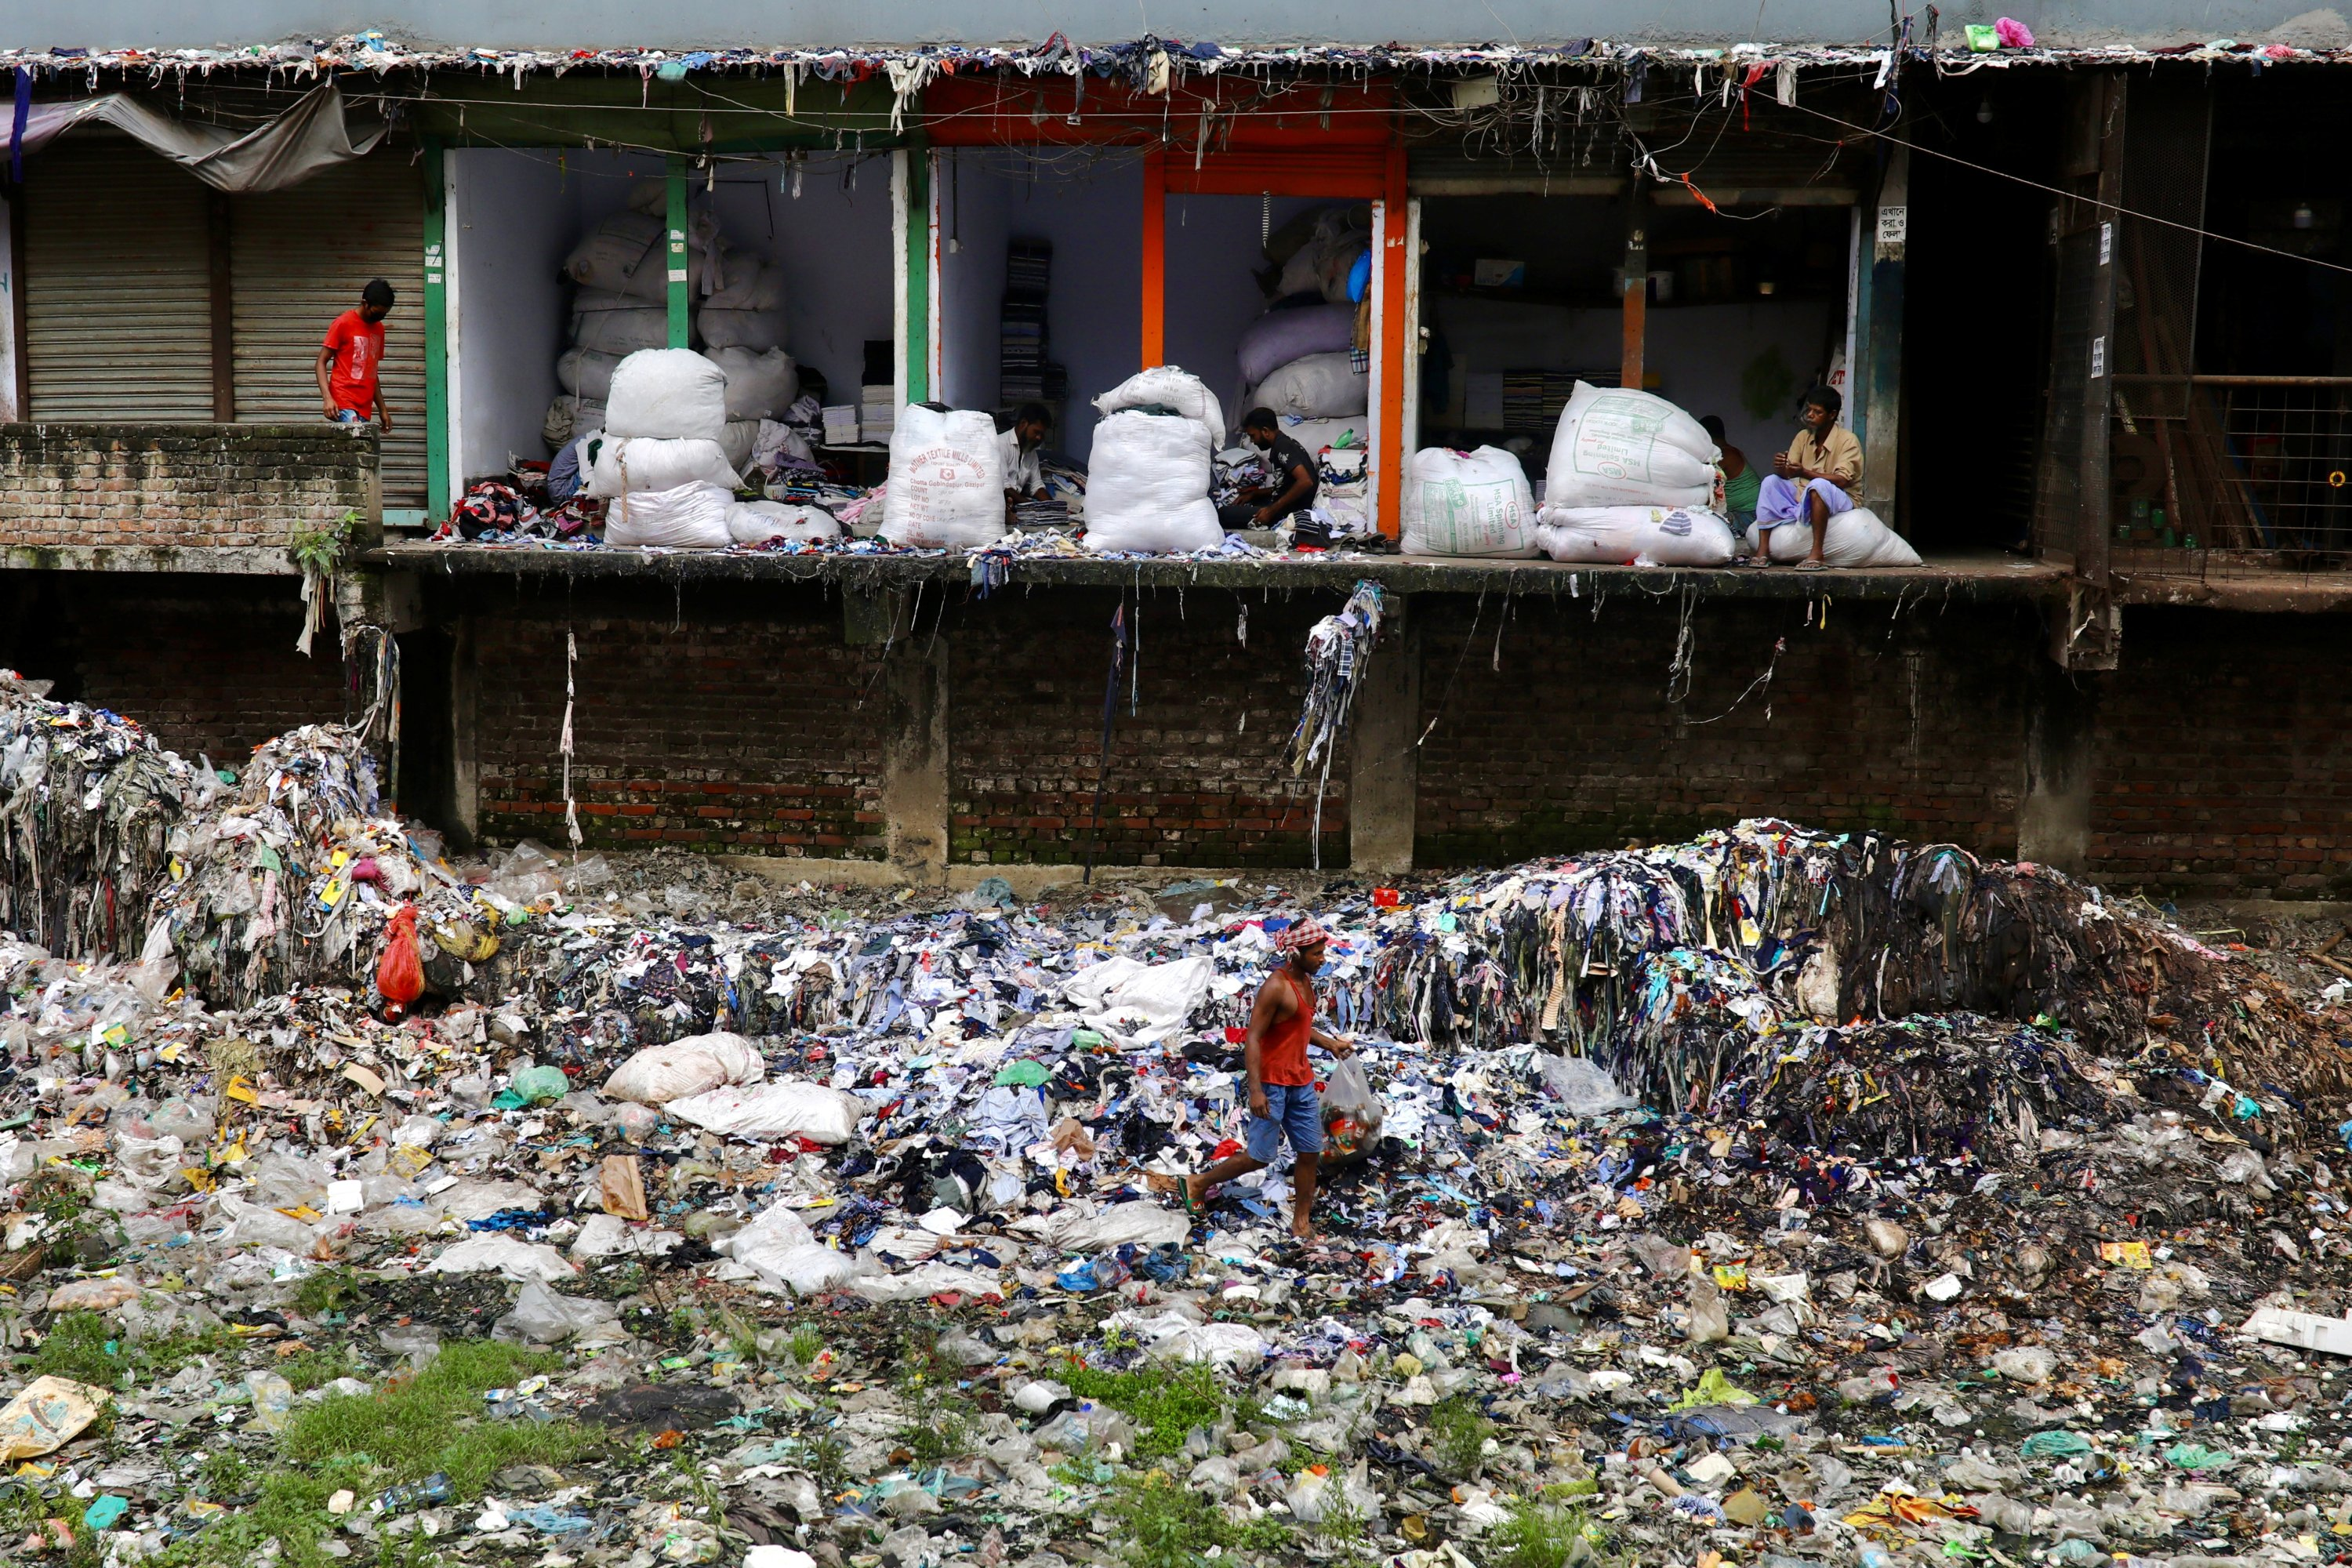 A man collects waste materials including plastics from the waste thrown by local garment companies in Dhaka, Bangladesh, October 18, 2020. REUTERS/Mohammad Ponir Hossain